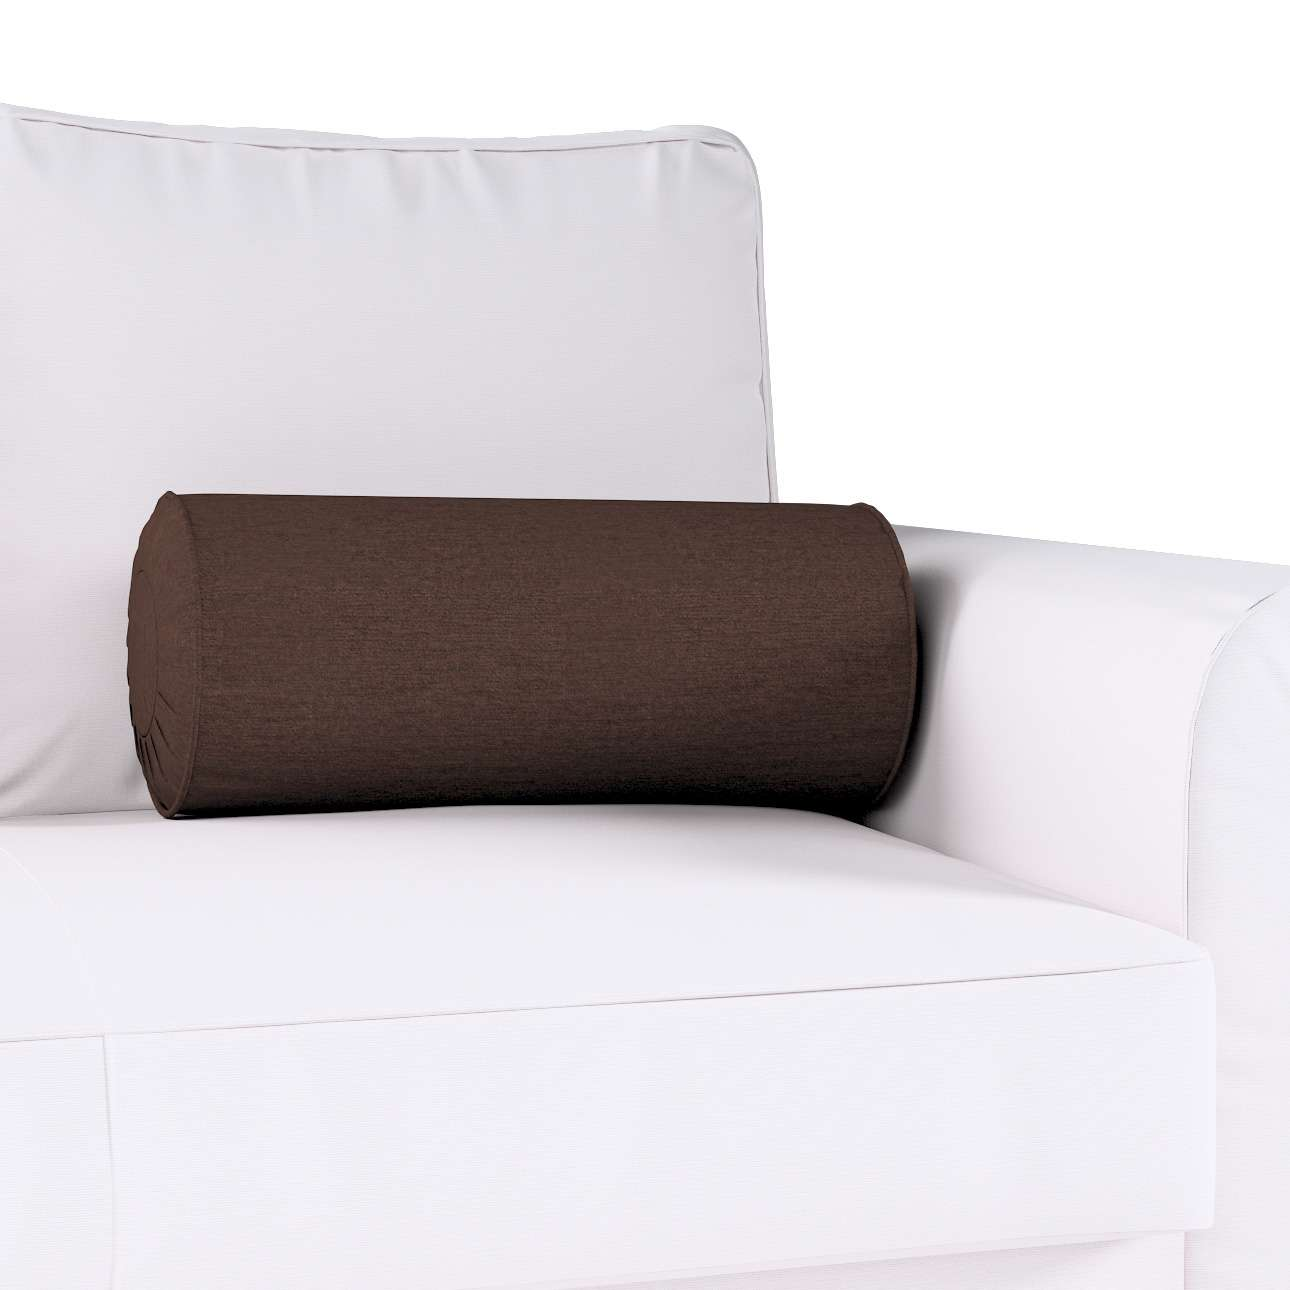 Bolster cushion with pleats Ø 20 × 50 cm (8 × 20 inch) in collection Chenille, fabric: 702-18